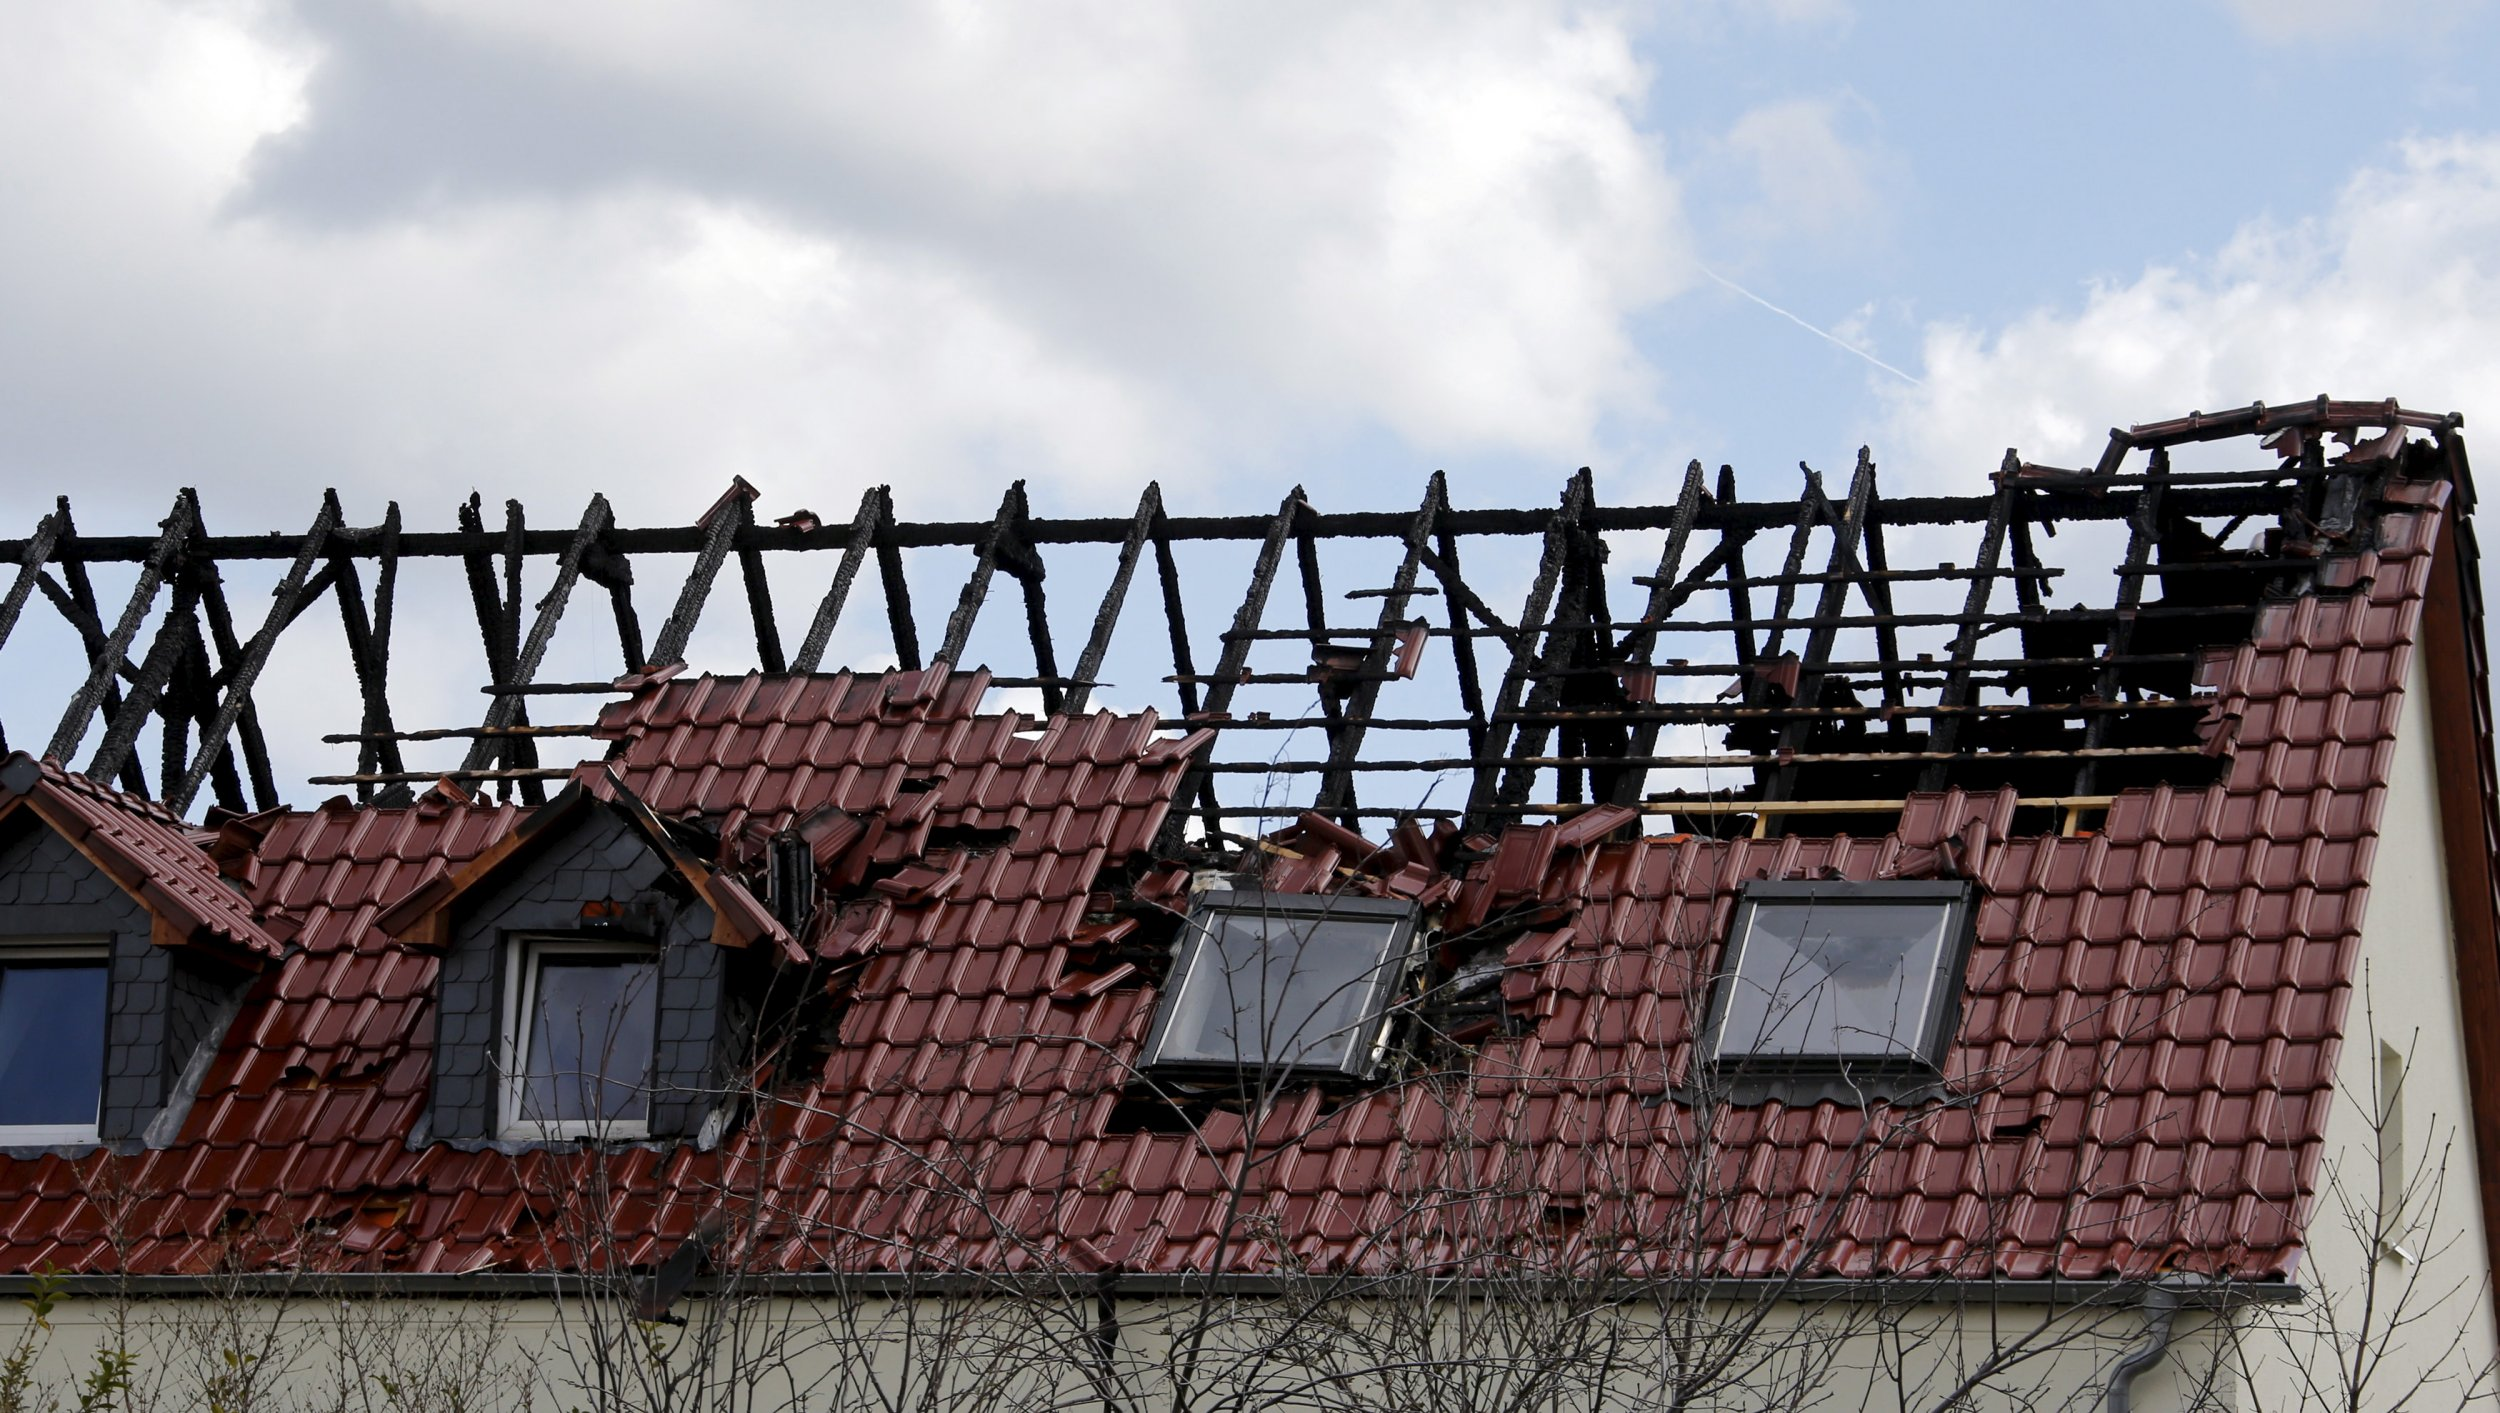 A suspected arson attack has damaged a building in Tröglitz which was to house asylum-seekers in May